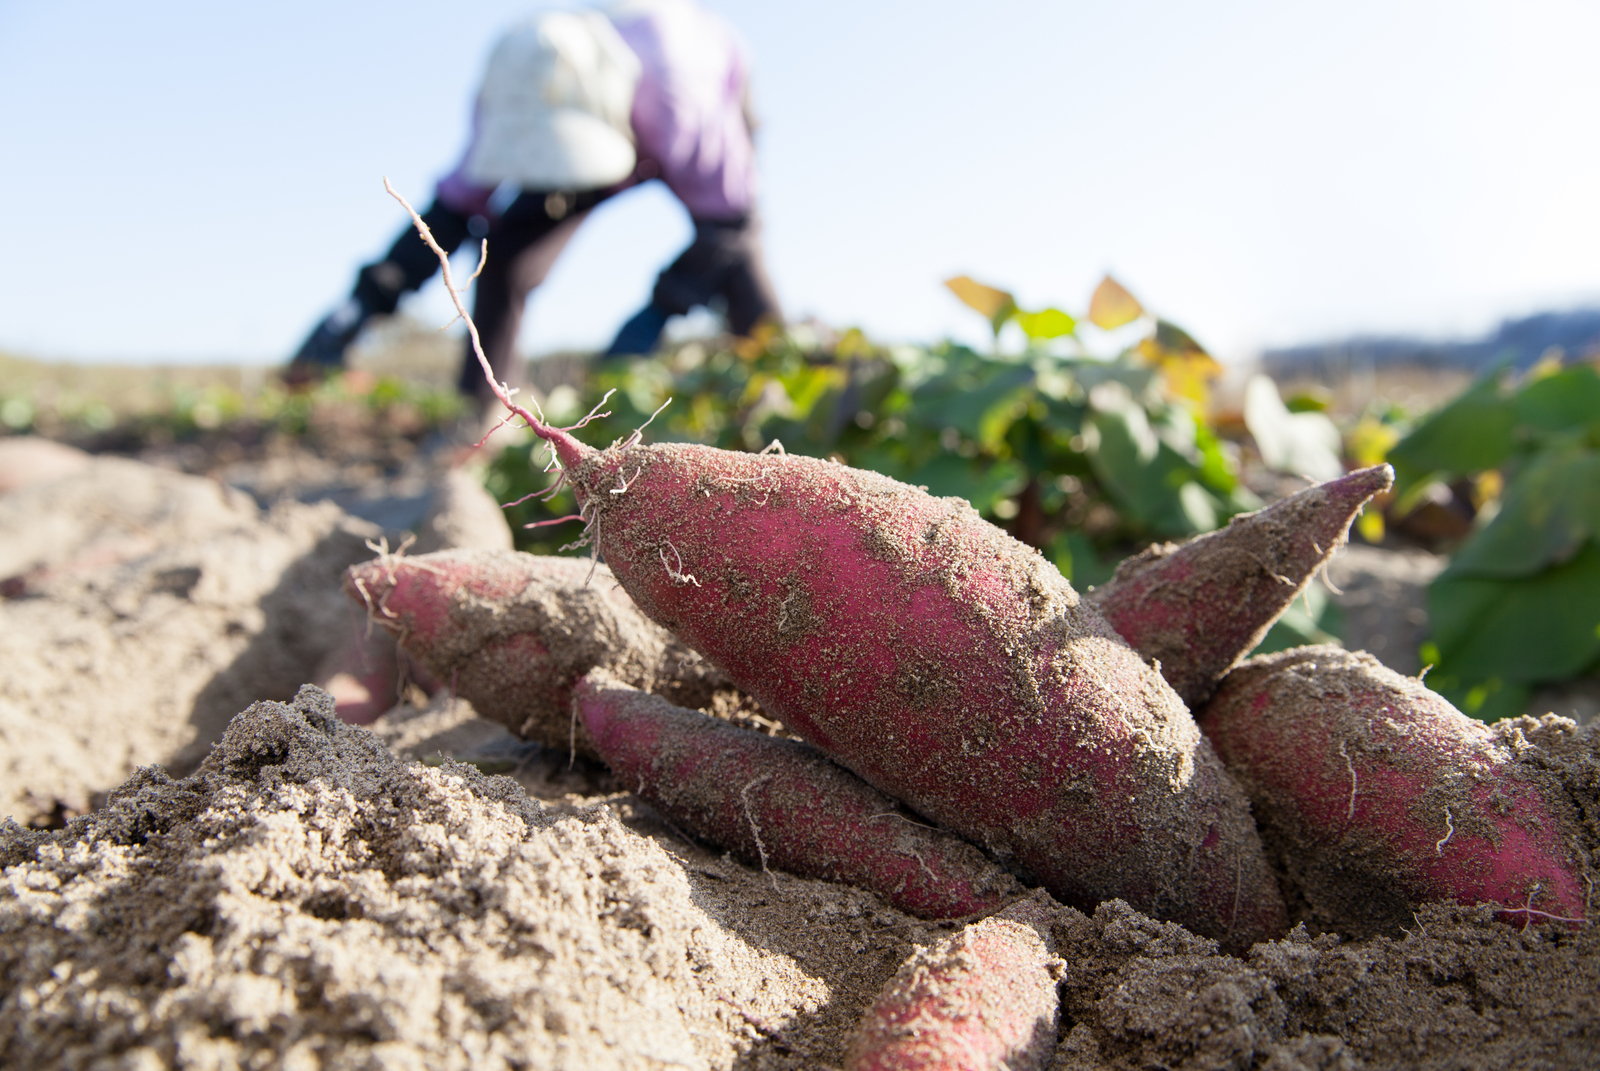 New study shows how quickly organic food can get rid of pesticides in body